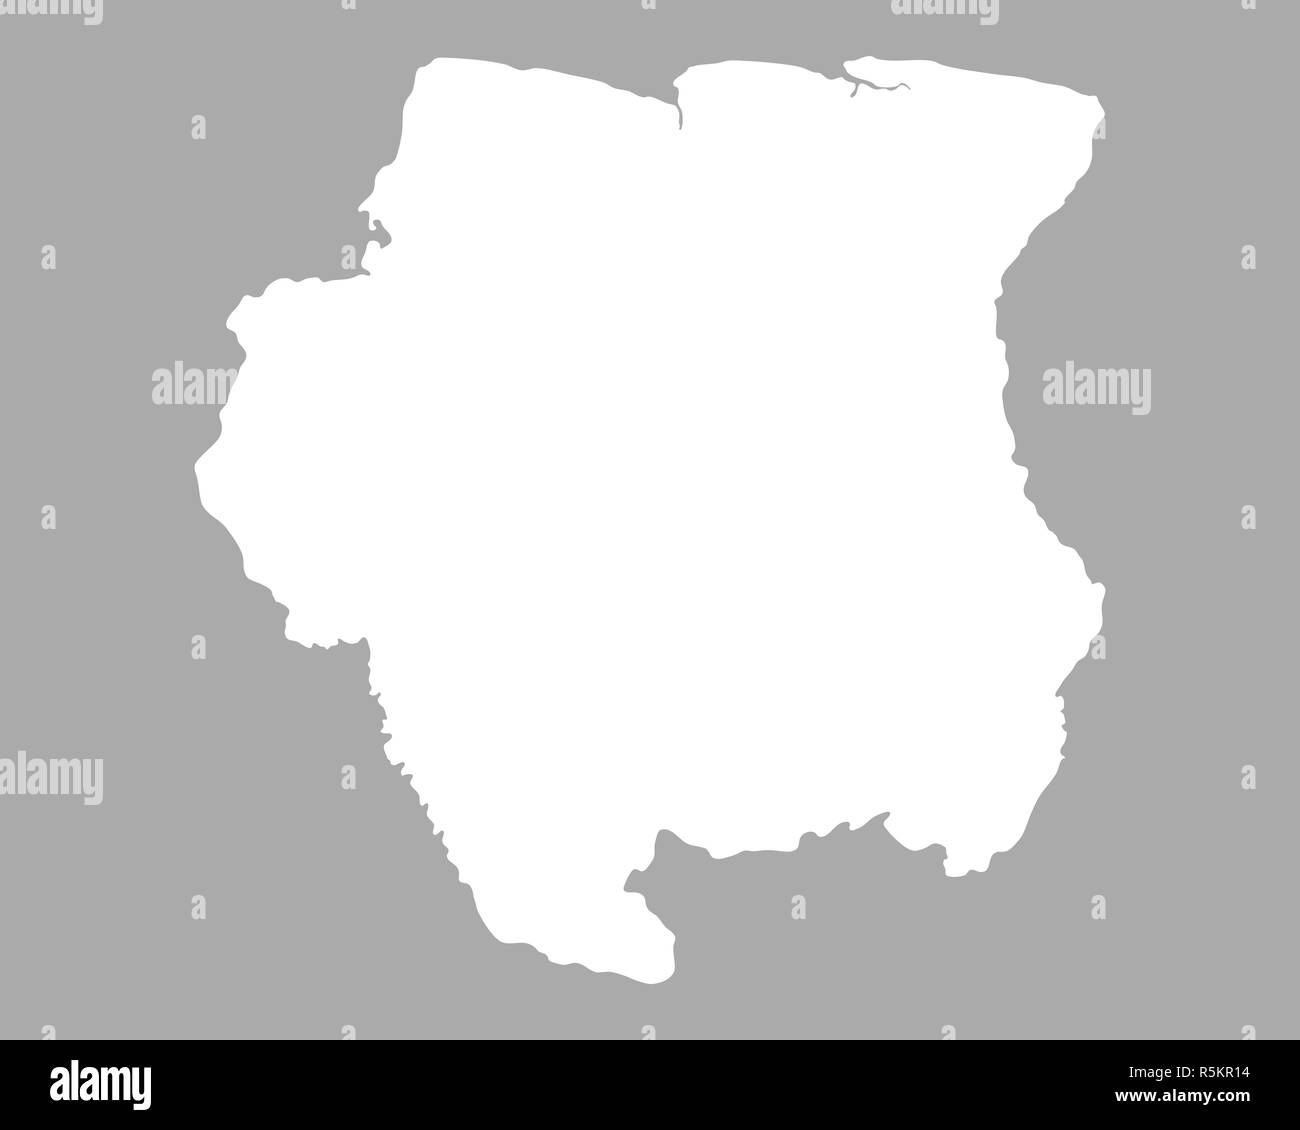 map of suriname - Stock Image